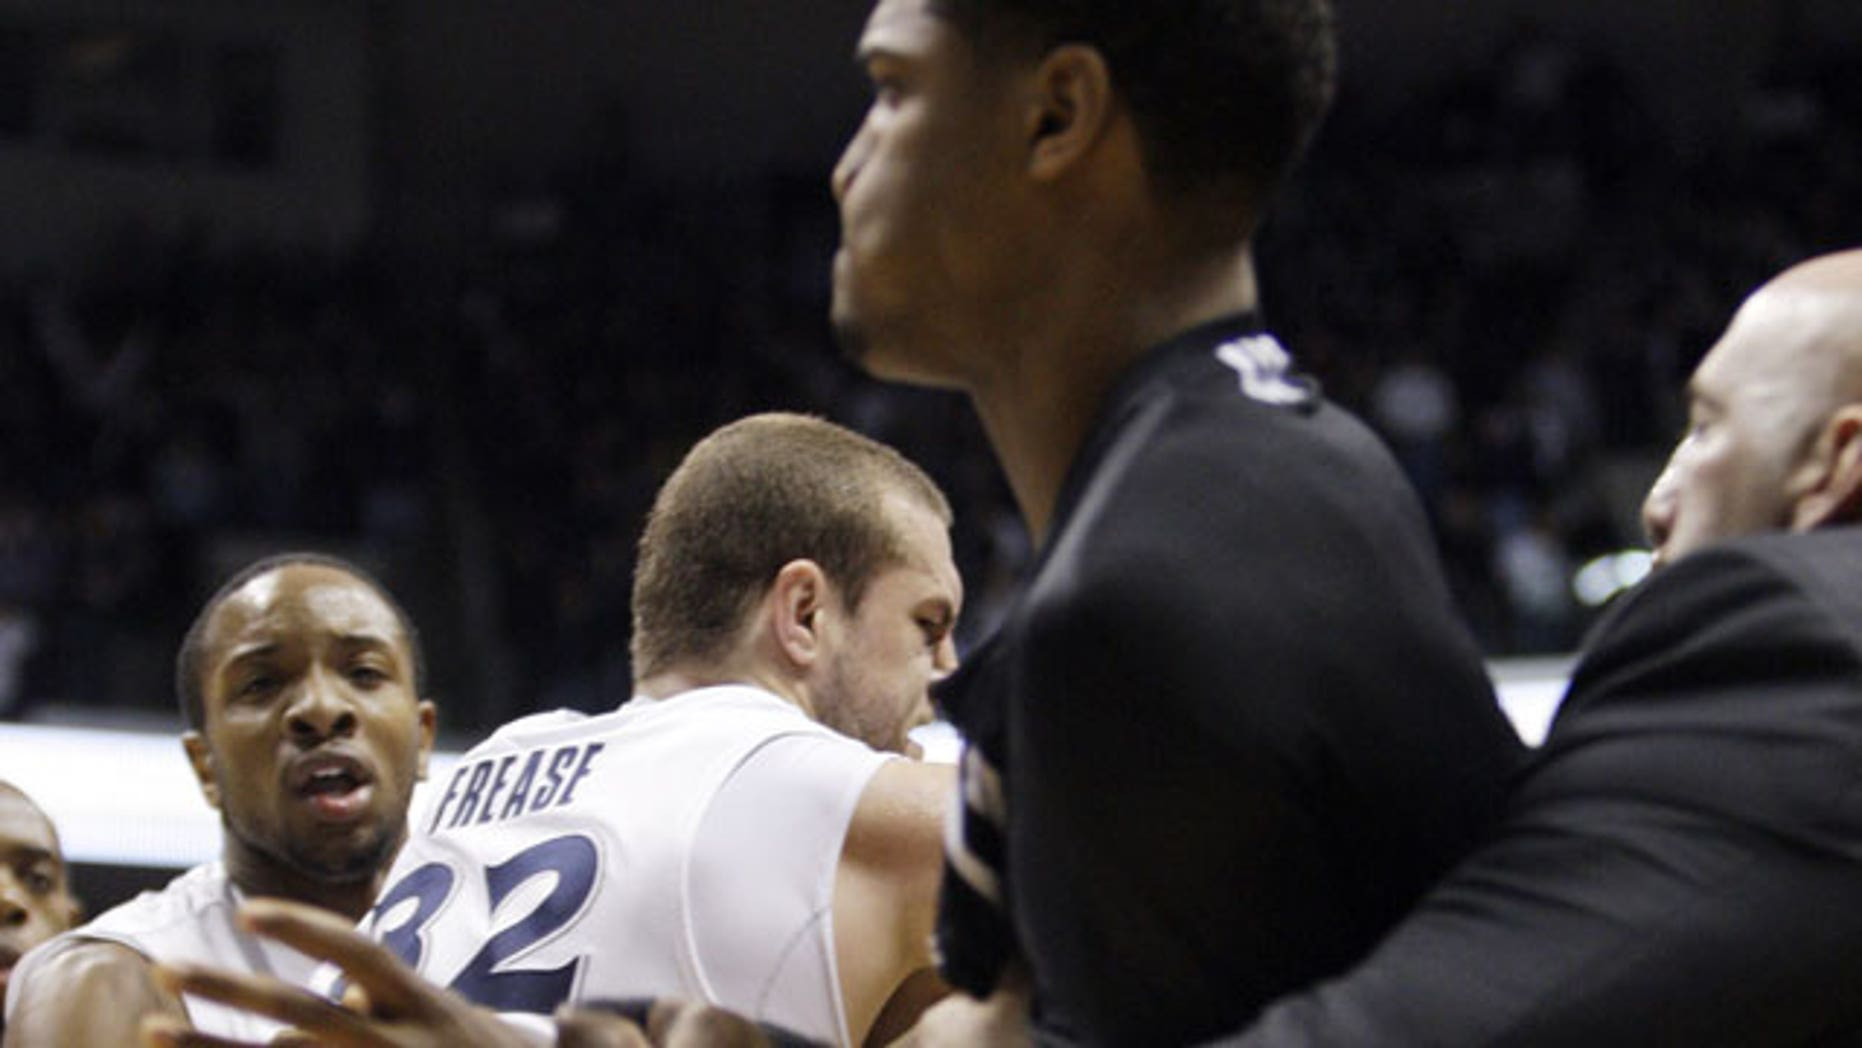 December 10, 2011: Xavier's Dezmine Wells, left, and center Kenny Frease (32) are held back while a Cincinnati coach holds back a player during a fight at the end of an NCAA college basketball game.